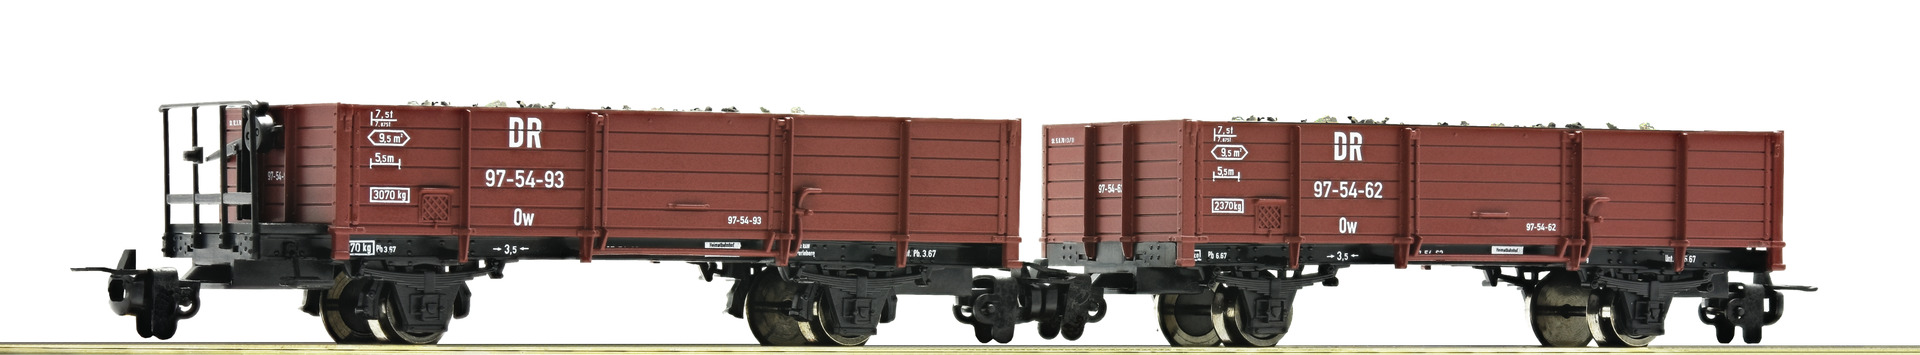 Roco 34589 2 piece set: ballast wagons, DR